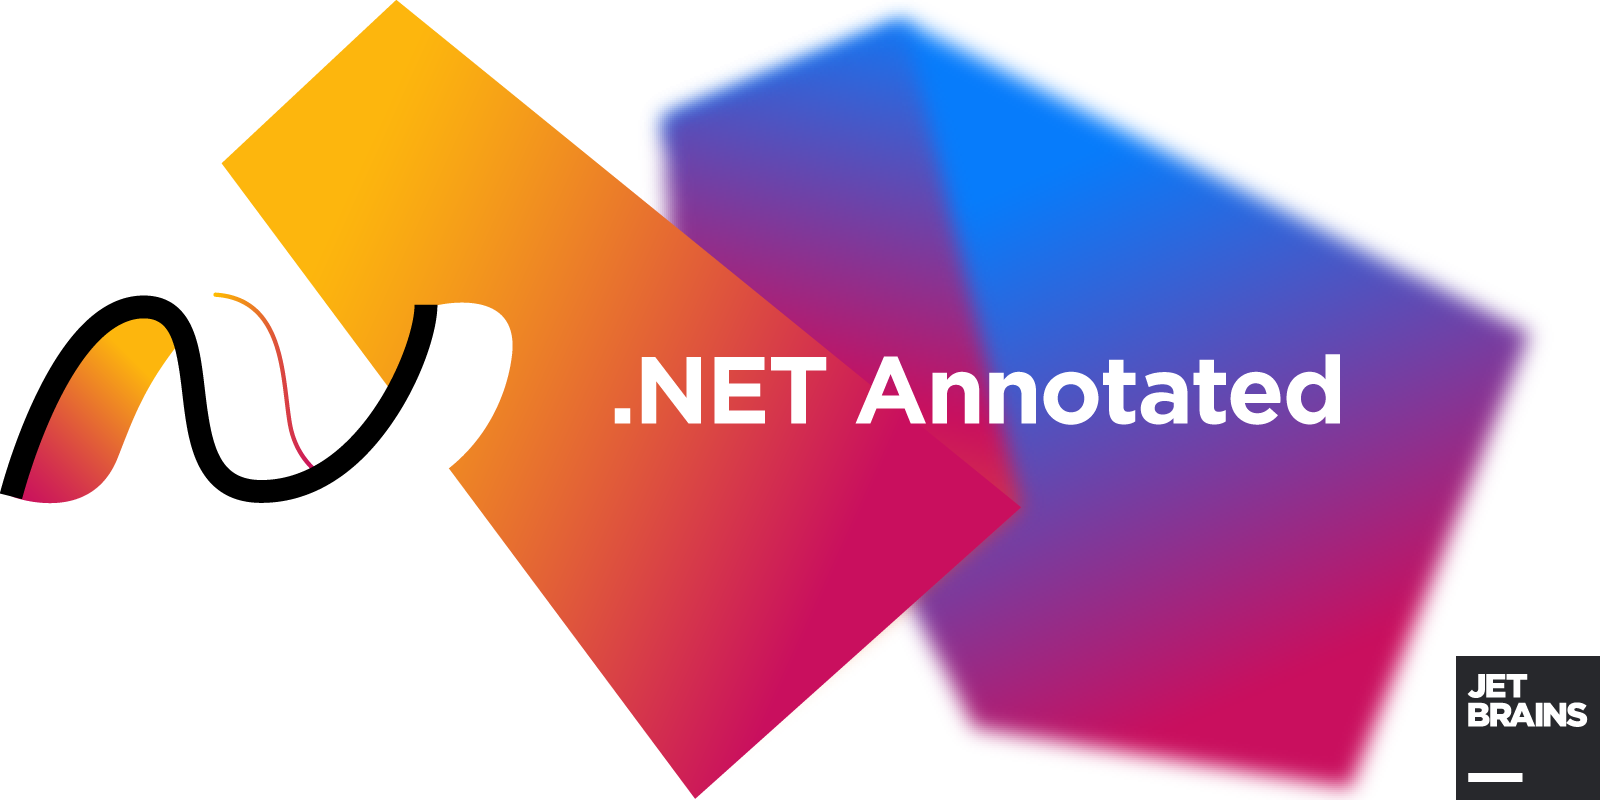 .NET Annotated